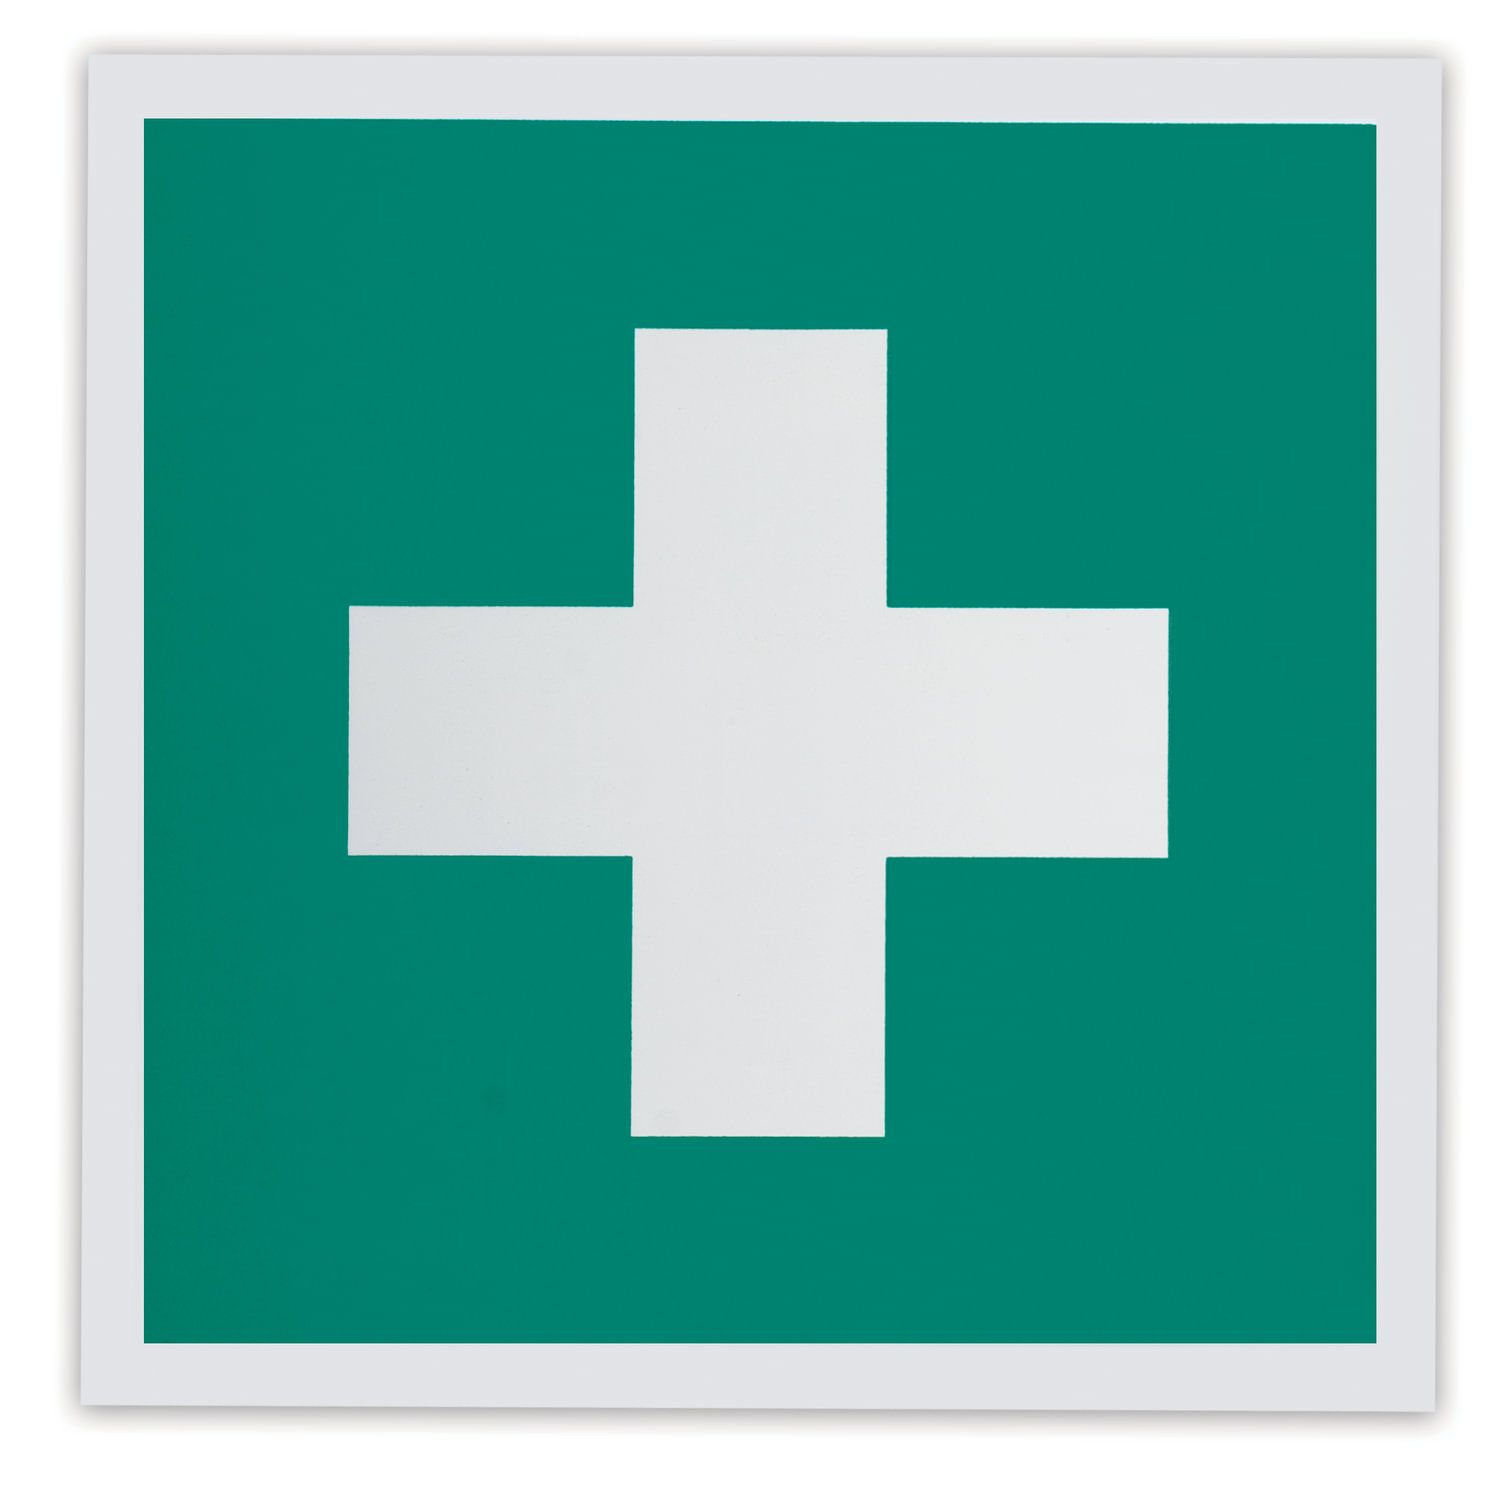 """Sign """"First aid kit"""", 200x200 mm, self-adhesive, photoluminescent"""